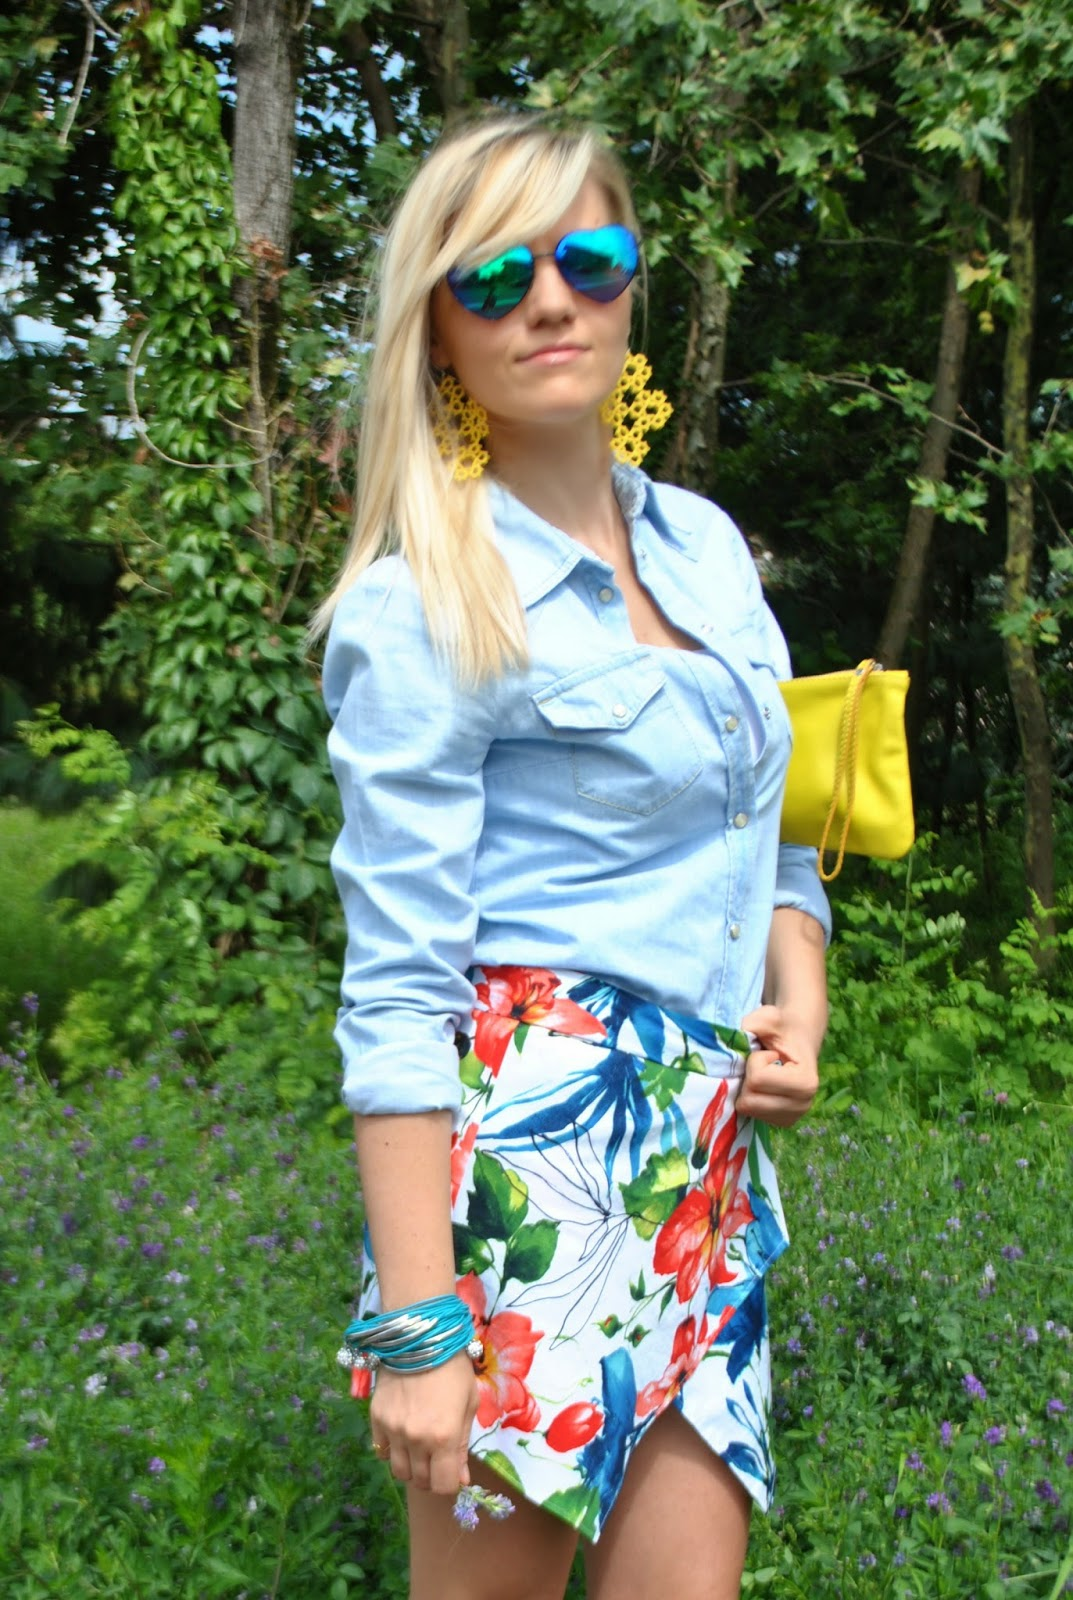 outfit floral skort camicia in denim borsa gialla abbinamenti borsa gialla come abbinare la borsa gialla bracciale majique come abbinare la skort abbinare la stampa a fiori outfit luglio 2014 outfit estivi outfit estate 2014 outfit mariafelicia magno fashion blogger di colorblock by felym fashion blogger bionde fashion blogger milano